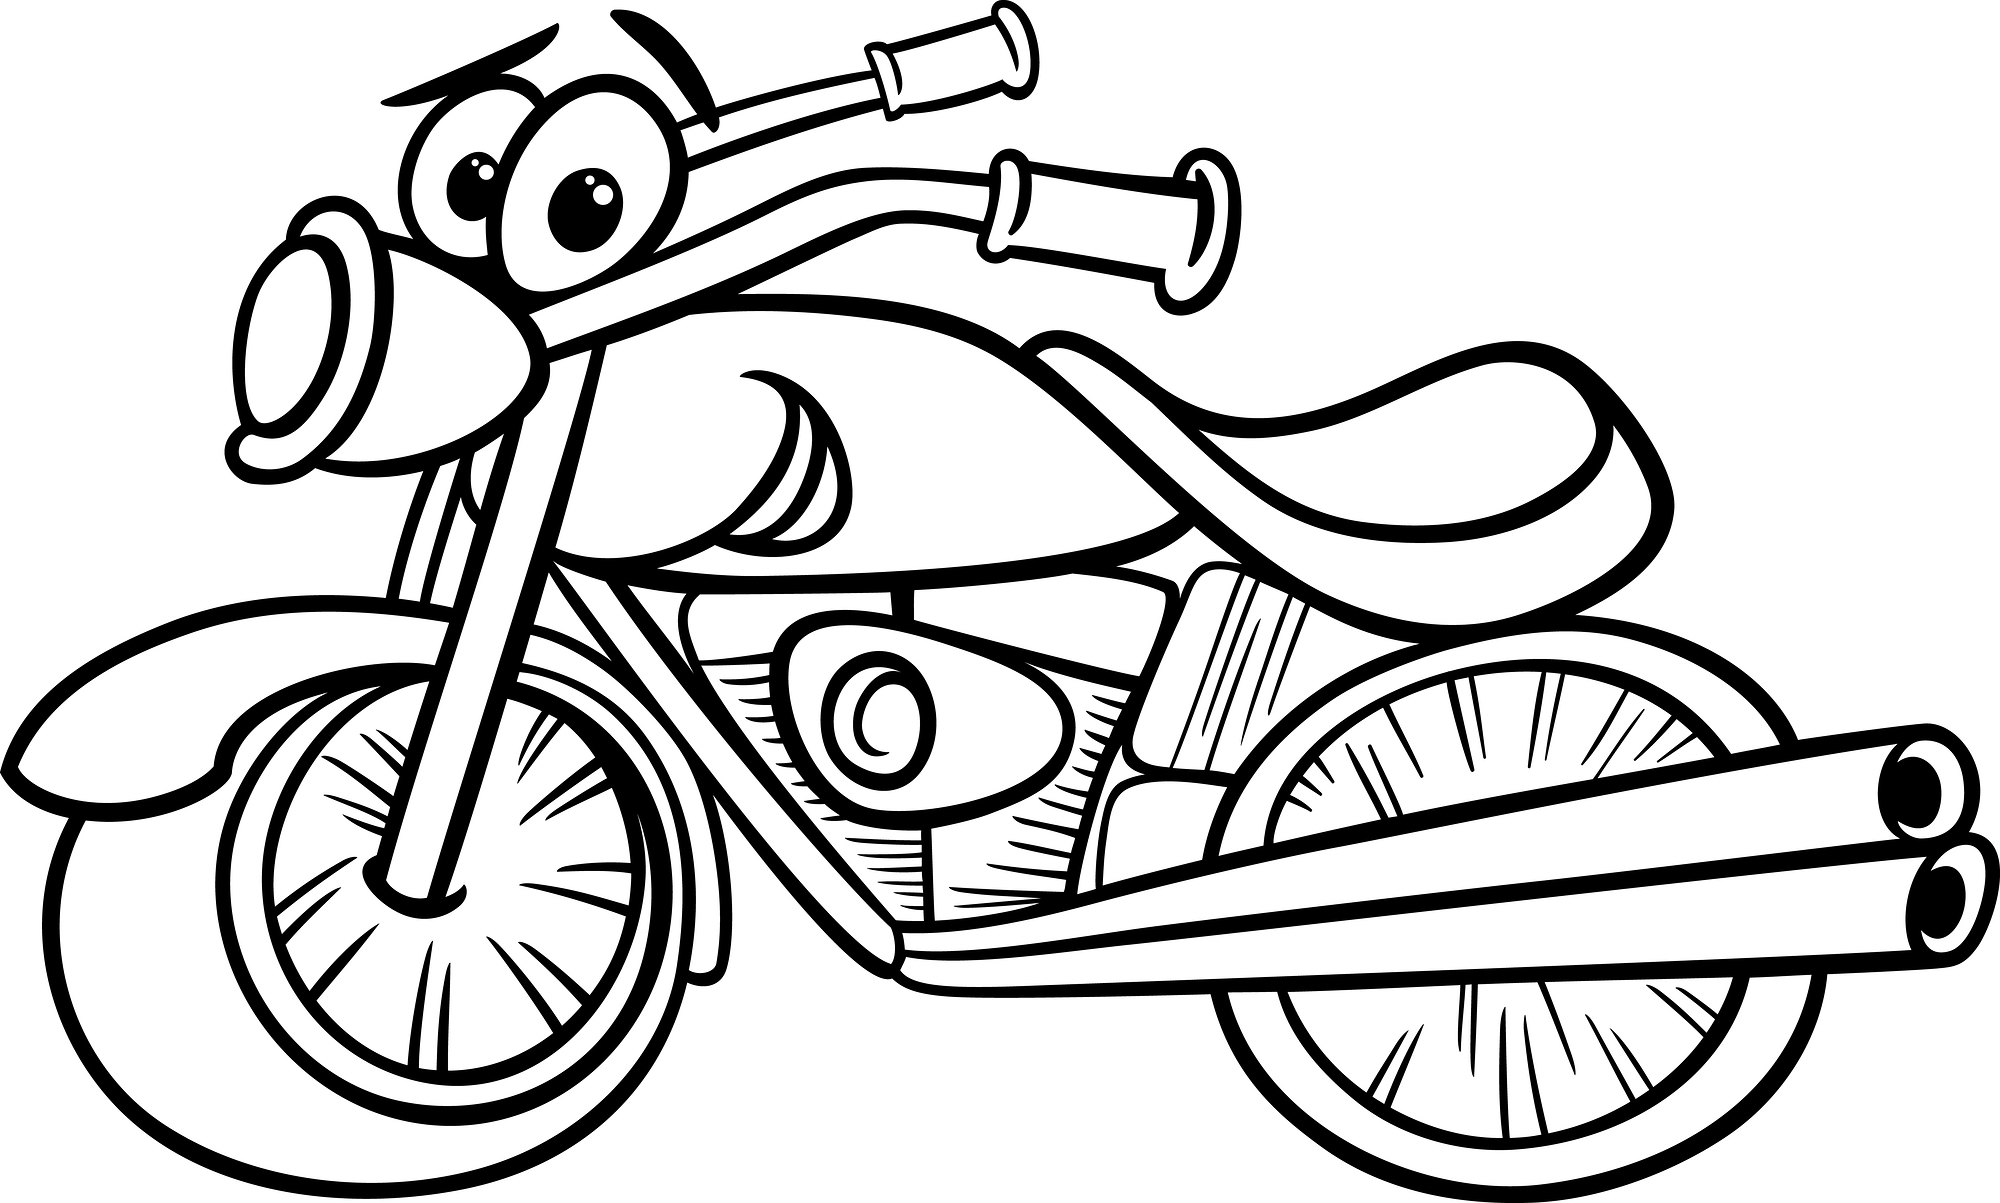 motorcycle color pages free printable motorcycle coloring pages for kids color pages motorcycle